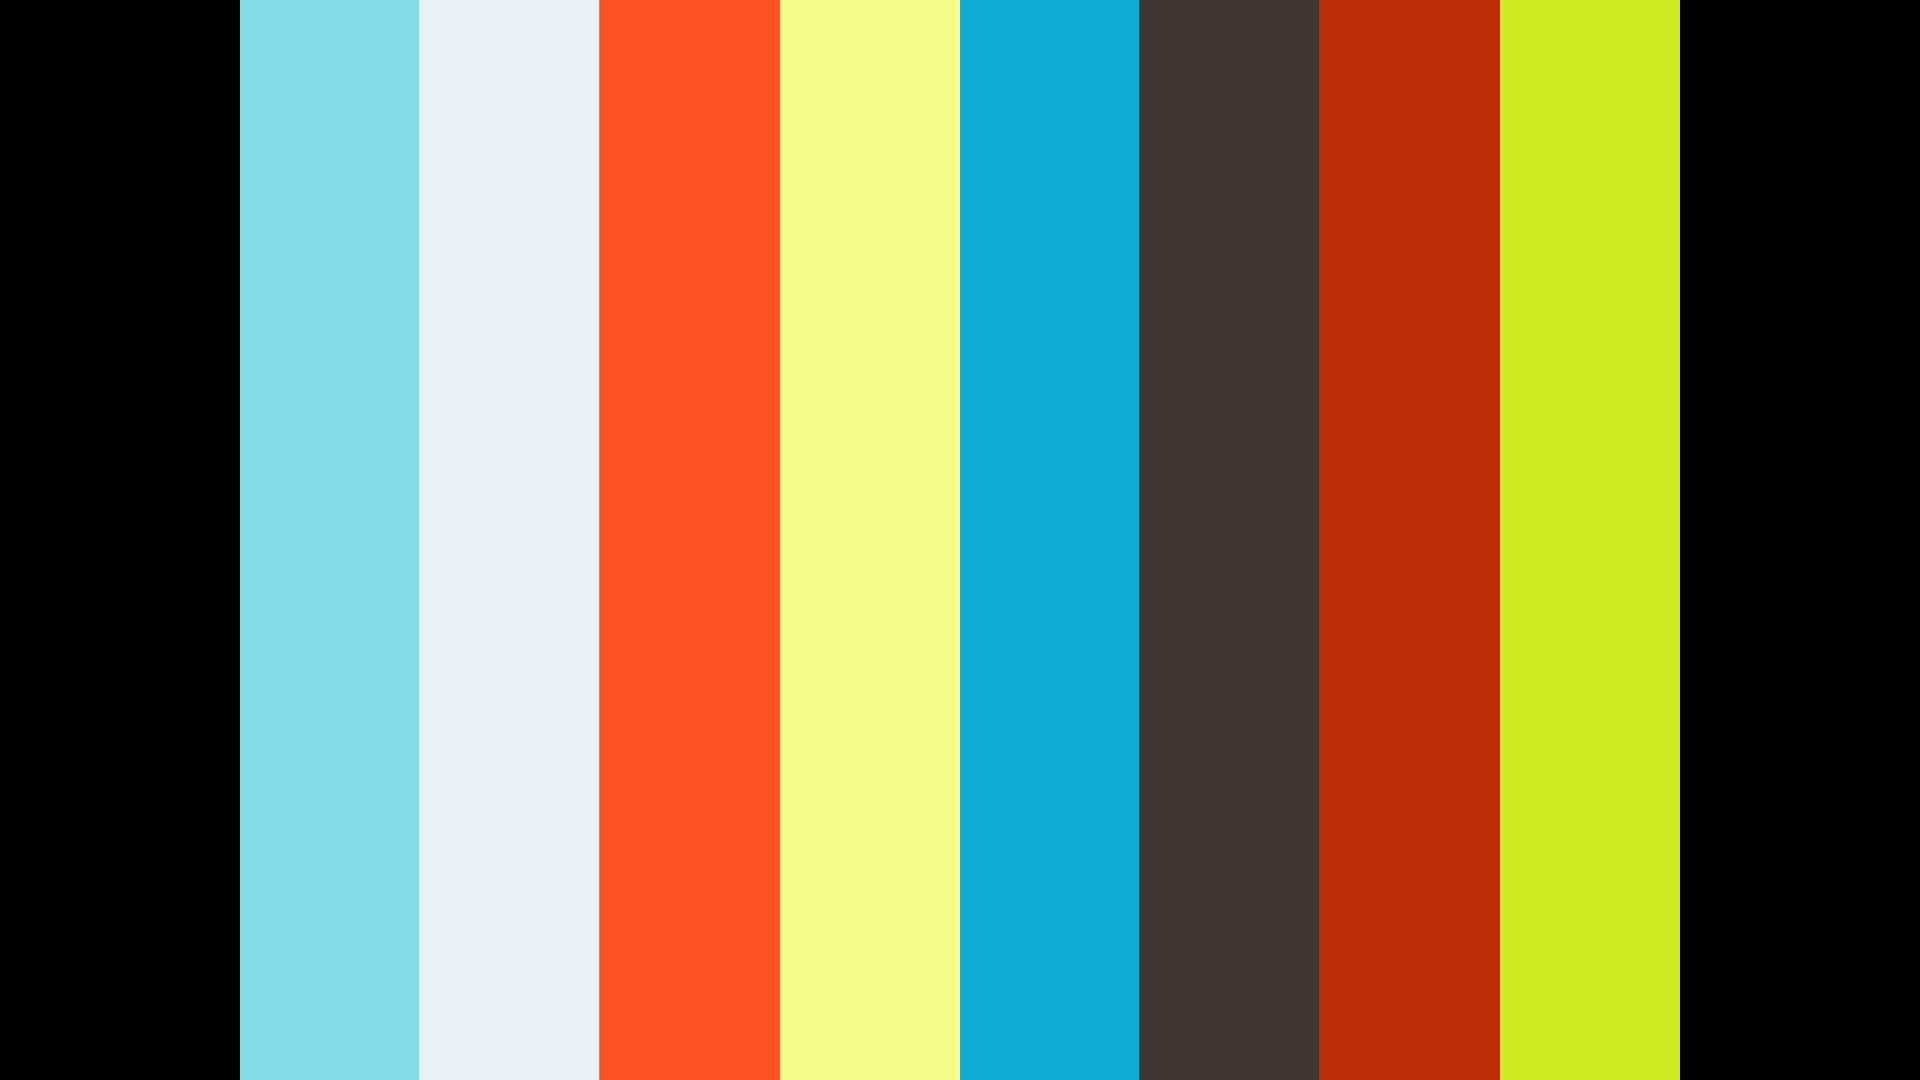 Time tower Hanoi 2011